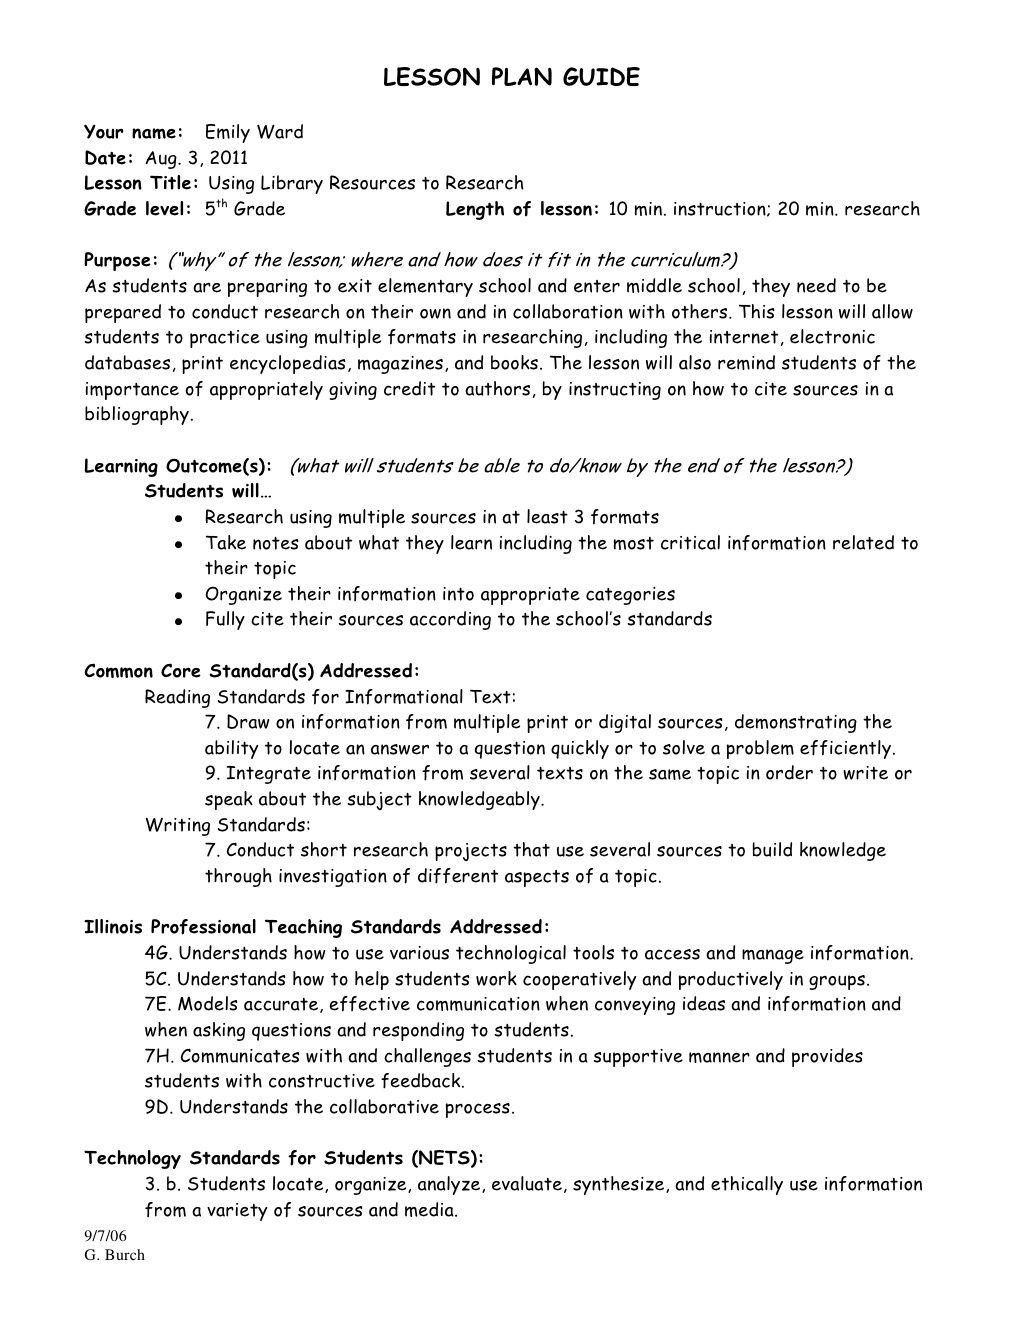 007 How To Write References In Research Paper Slideshare Excellent Large